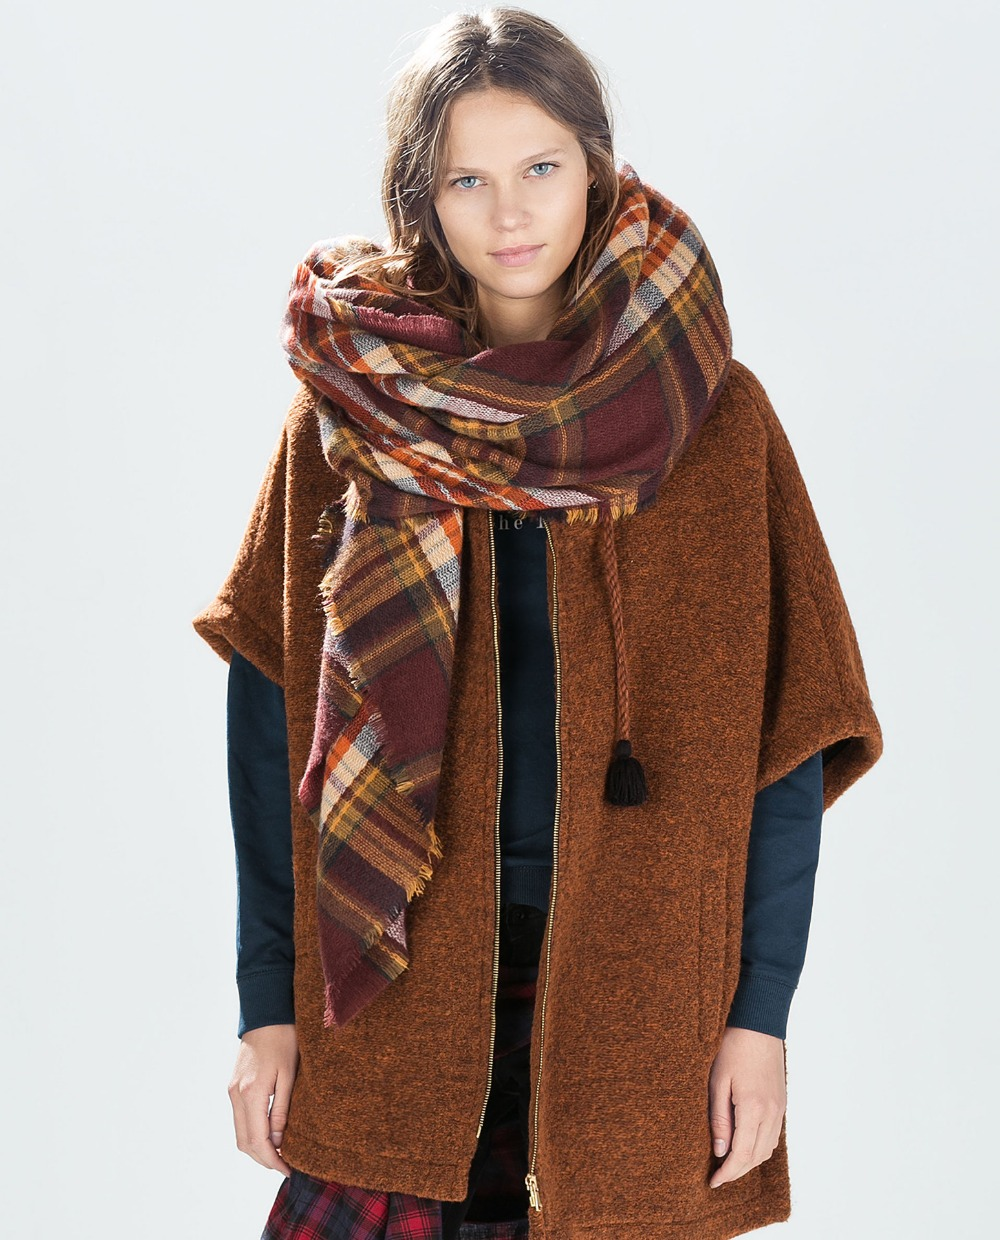 New design lady oversized Plaid chocolate brown large blanket   scarf     wraps   shawl